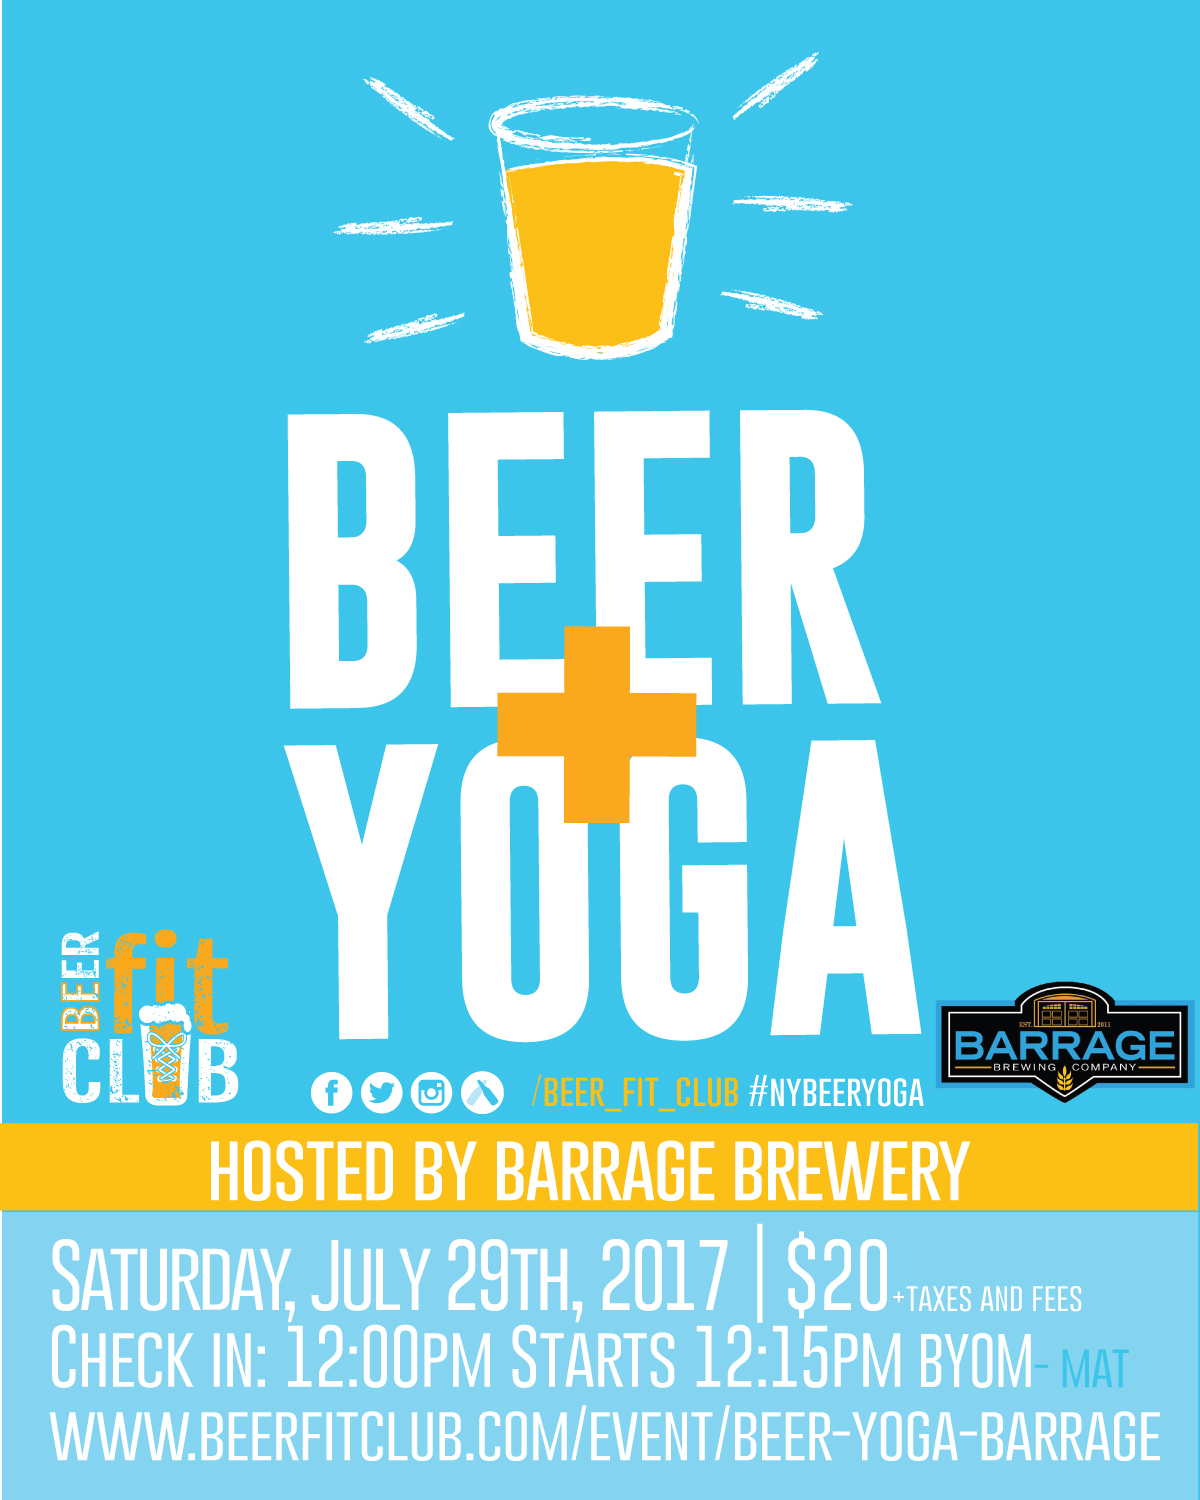 Beer Yoga At Barrage